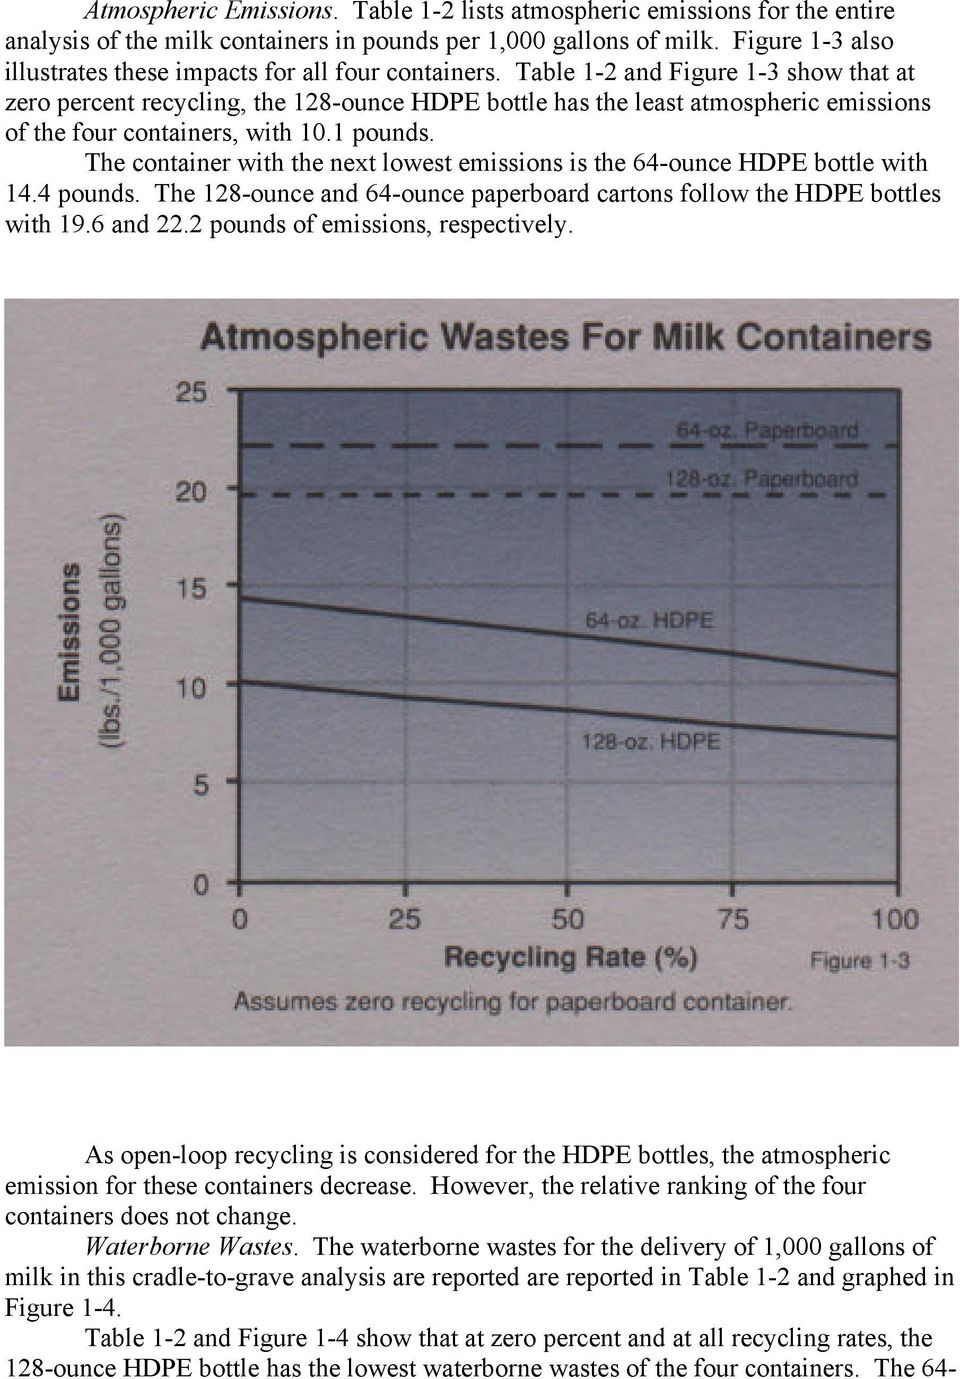 Table 1-2 and Figure 1-3 show that at zero percent recycling, the 128-ounce HDPE bottle has the least atmospheric emissions of the four containers, with 10.1 pounds.